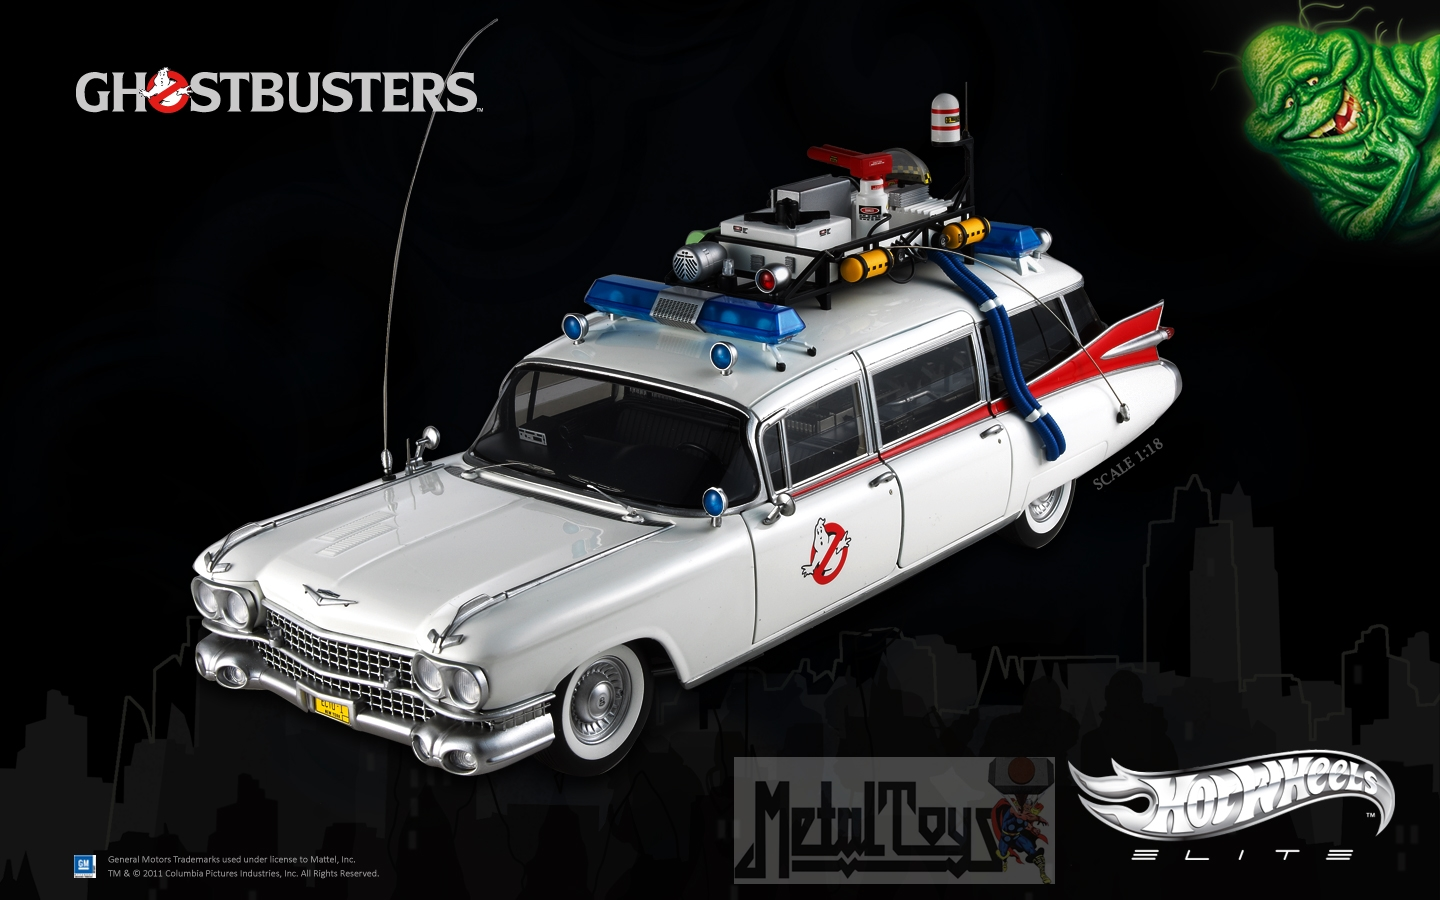 ecto 1 ghostbusters wallpaper - photo #6